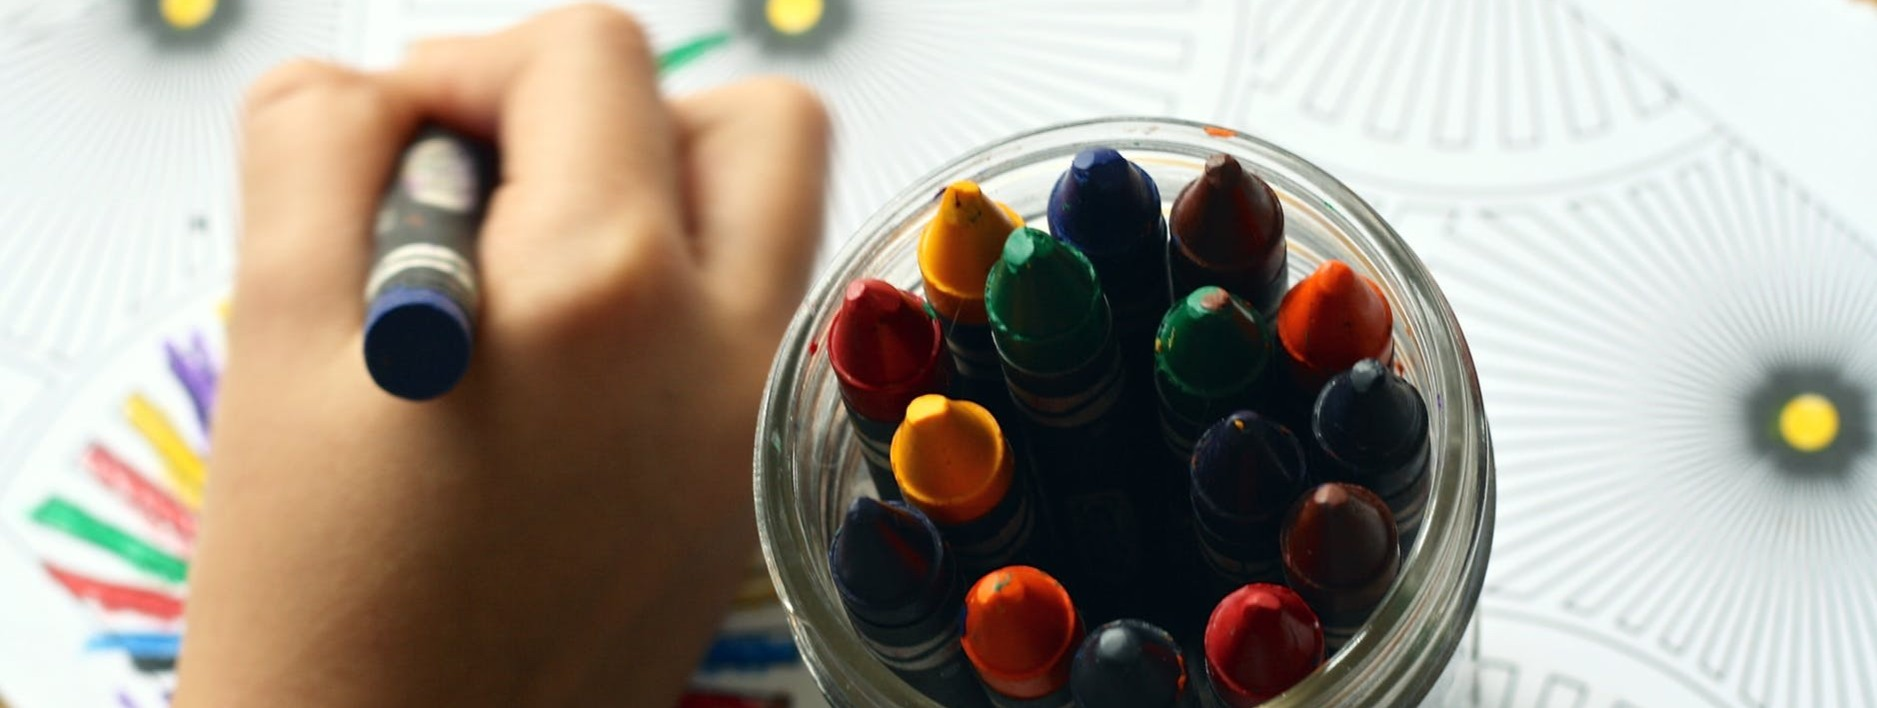 Using crayons to color a picture